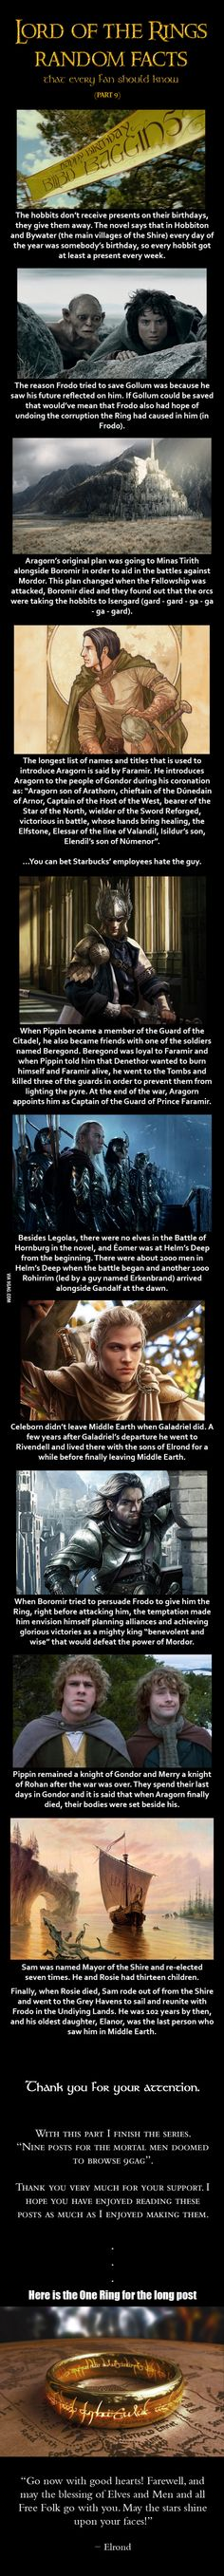 Here are some Lord of the Rings random facts (Part 9)